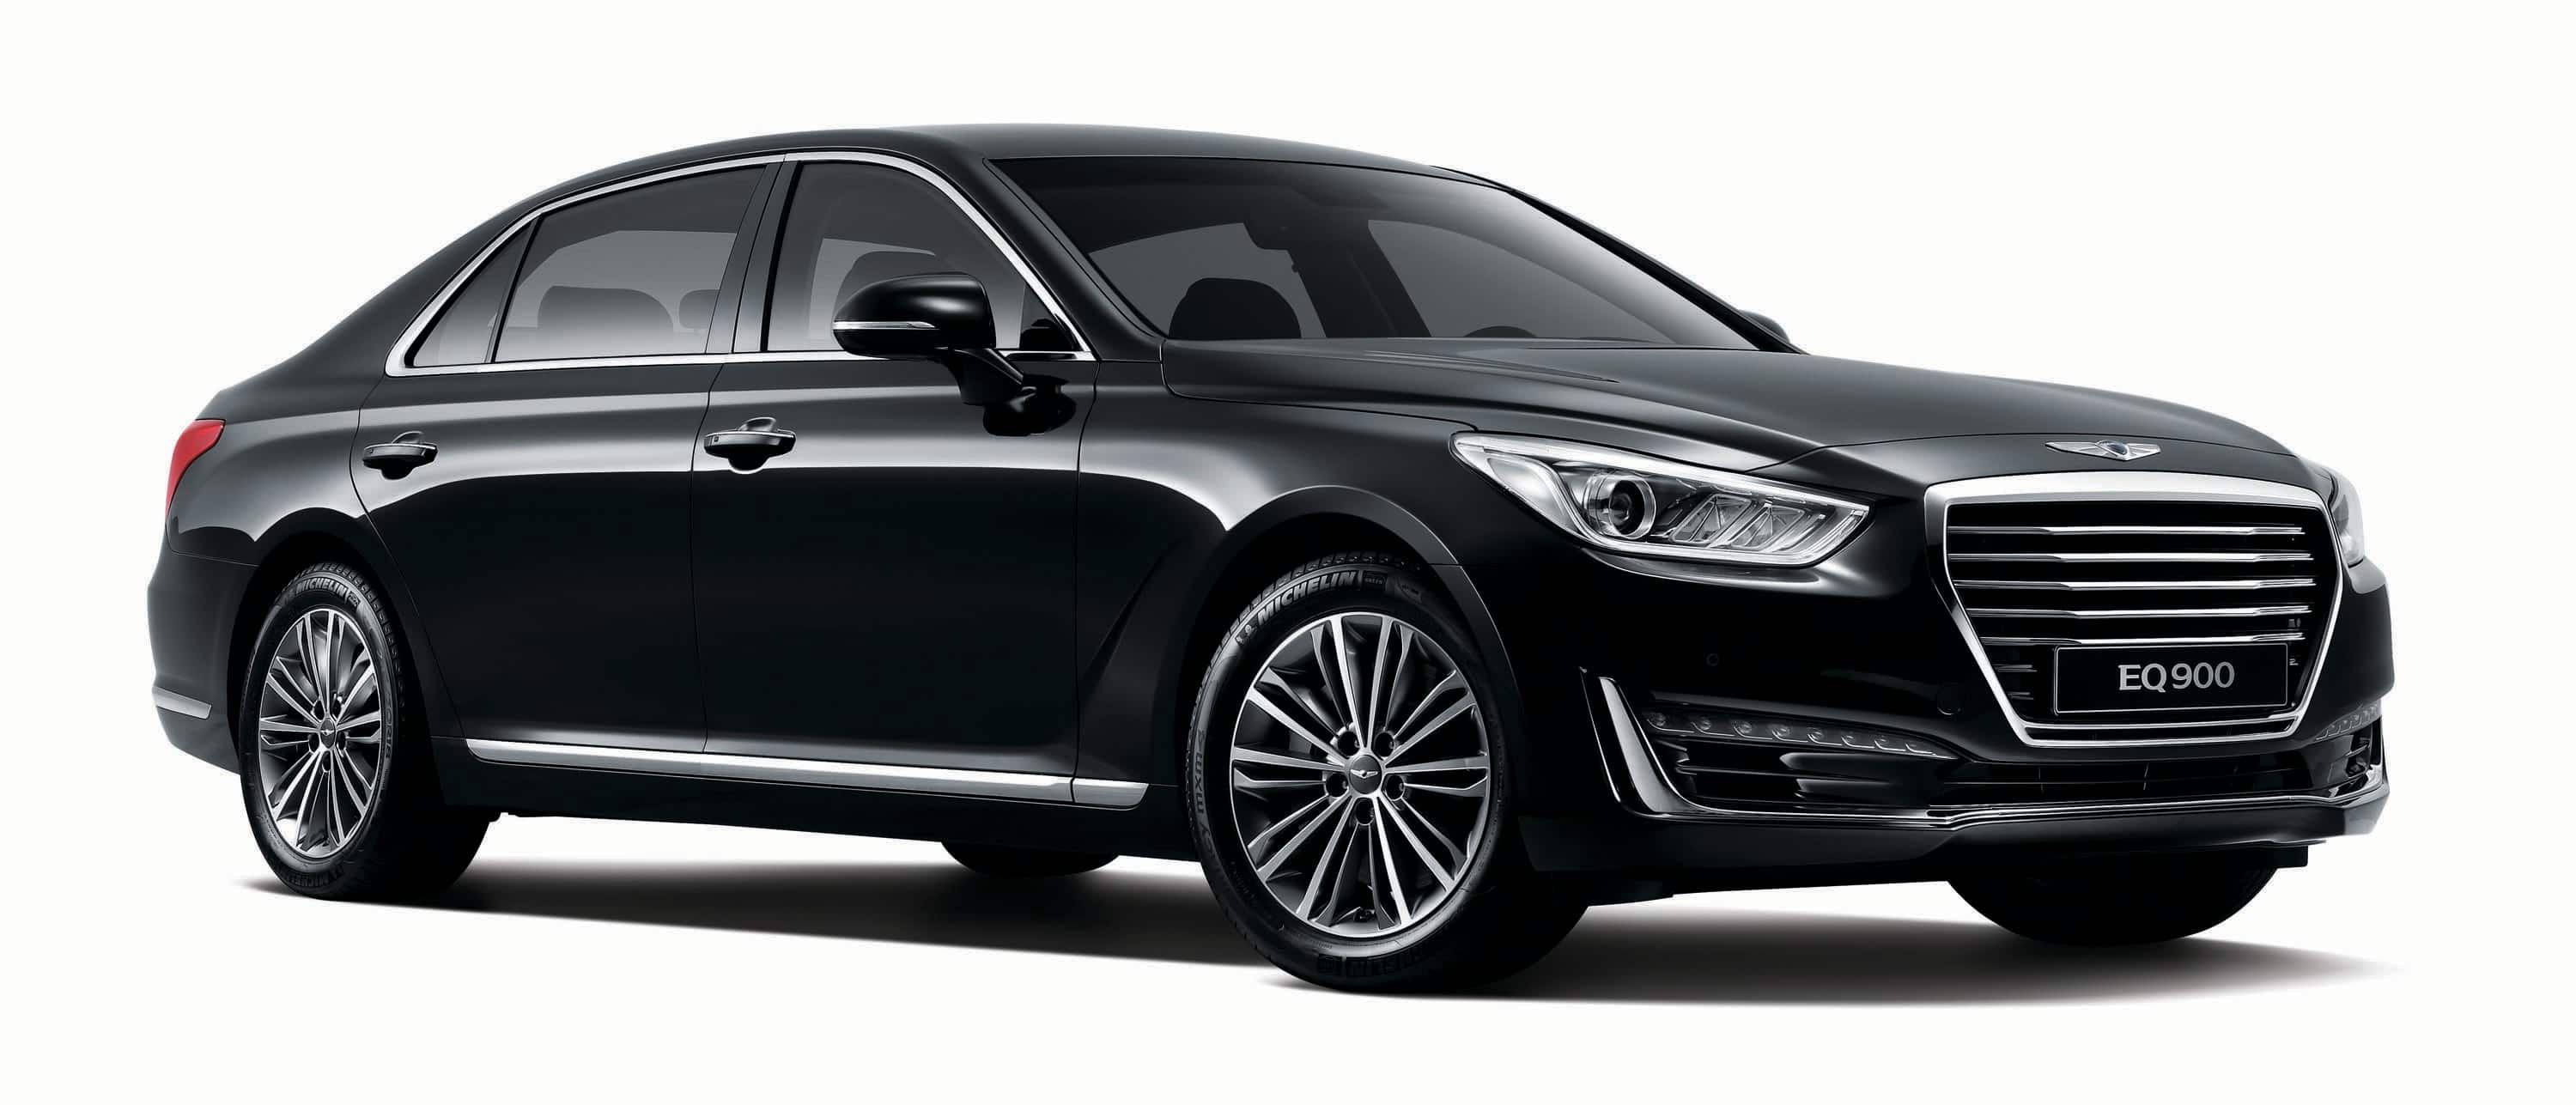 Genesis Wins 2015 GOOD DESIGN Award For Range-Topping G90 Large Luxury Sedan